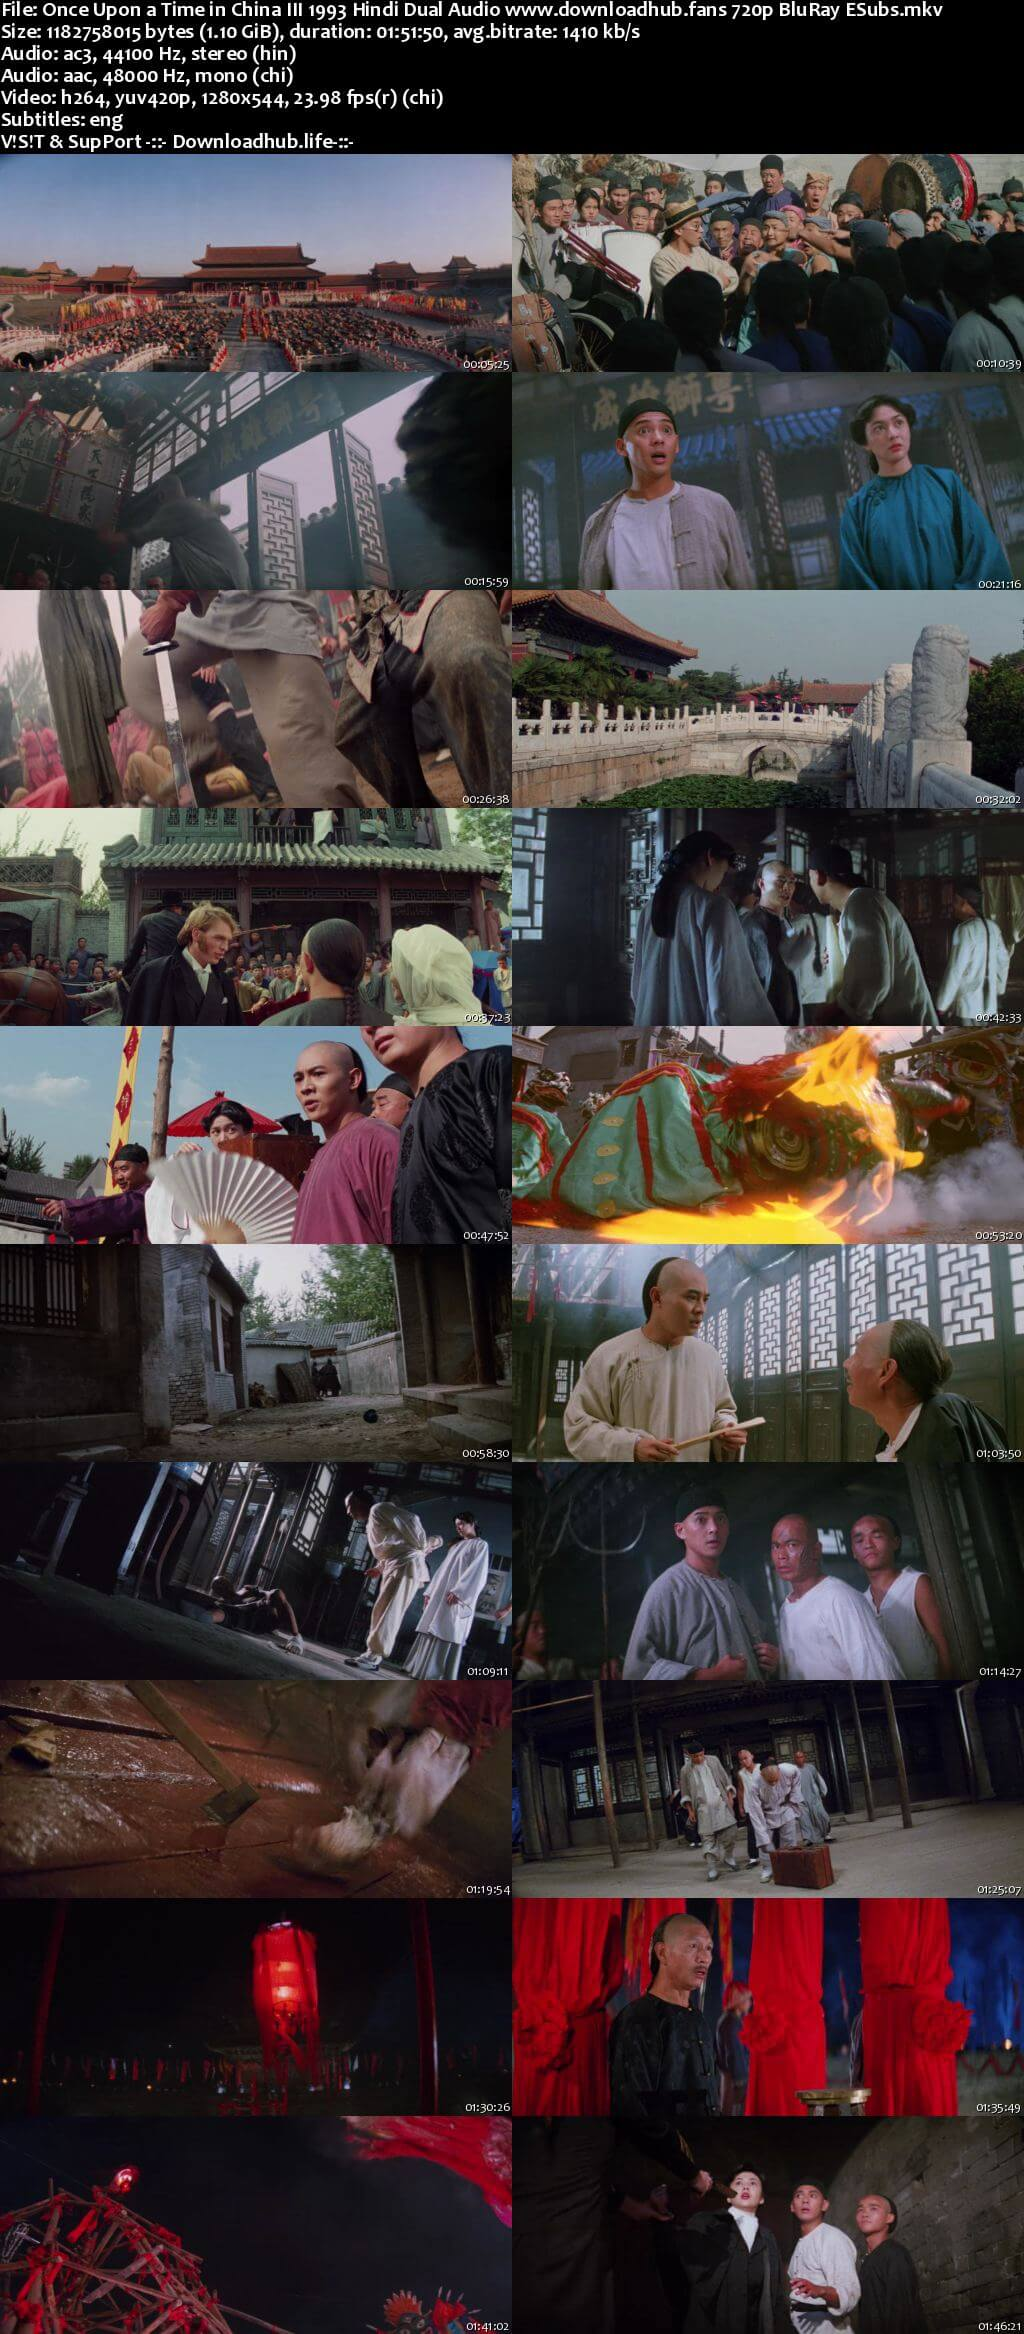 Once Upon a Time in China III 1993 Hindi Dual Audio 720p BluRay ESubs